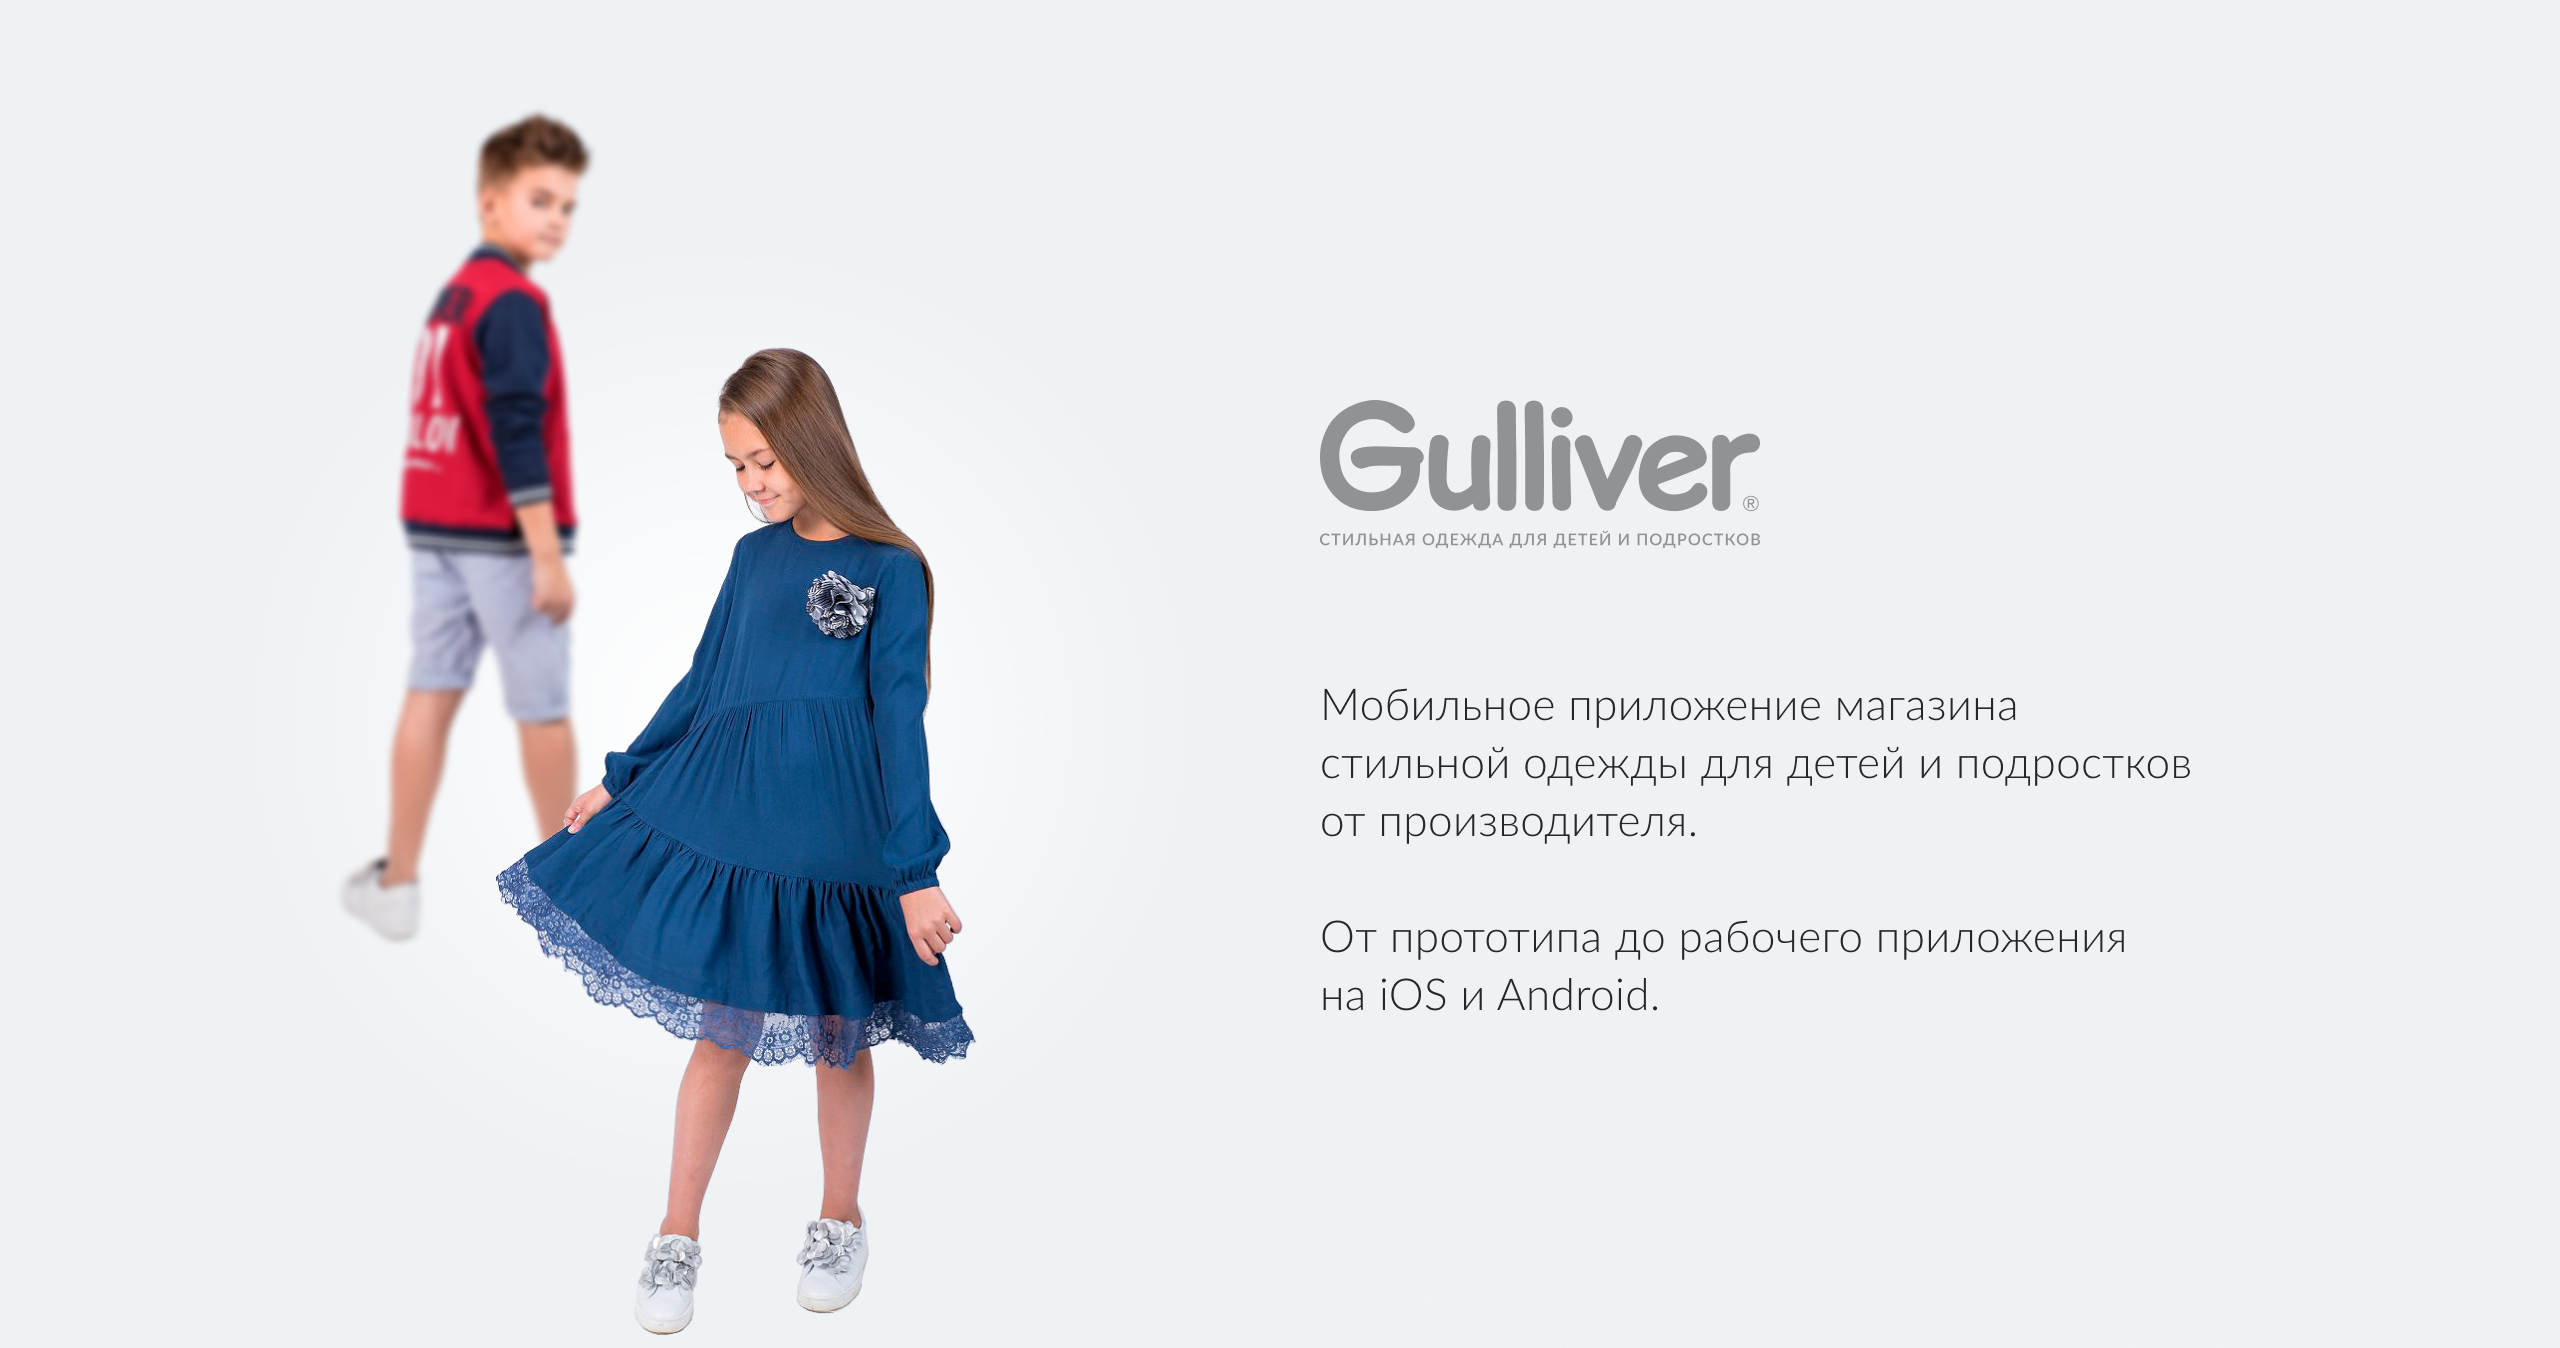 Gulliver Аналитика / Дизайн / Фронтенд-программирование © No Logo Studio